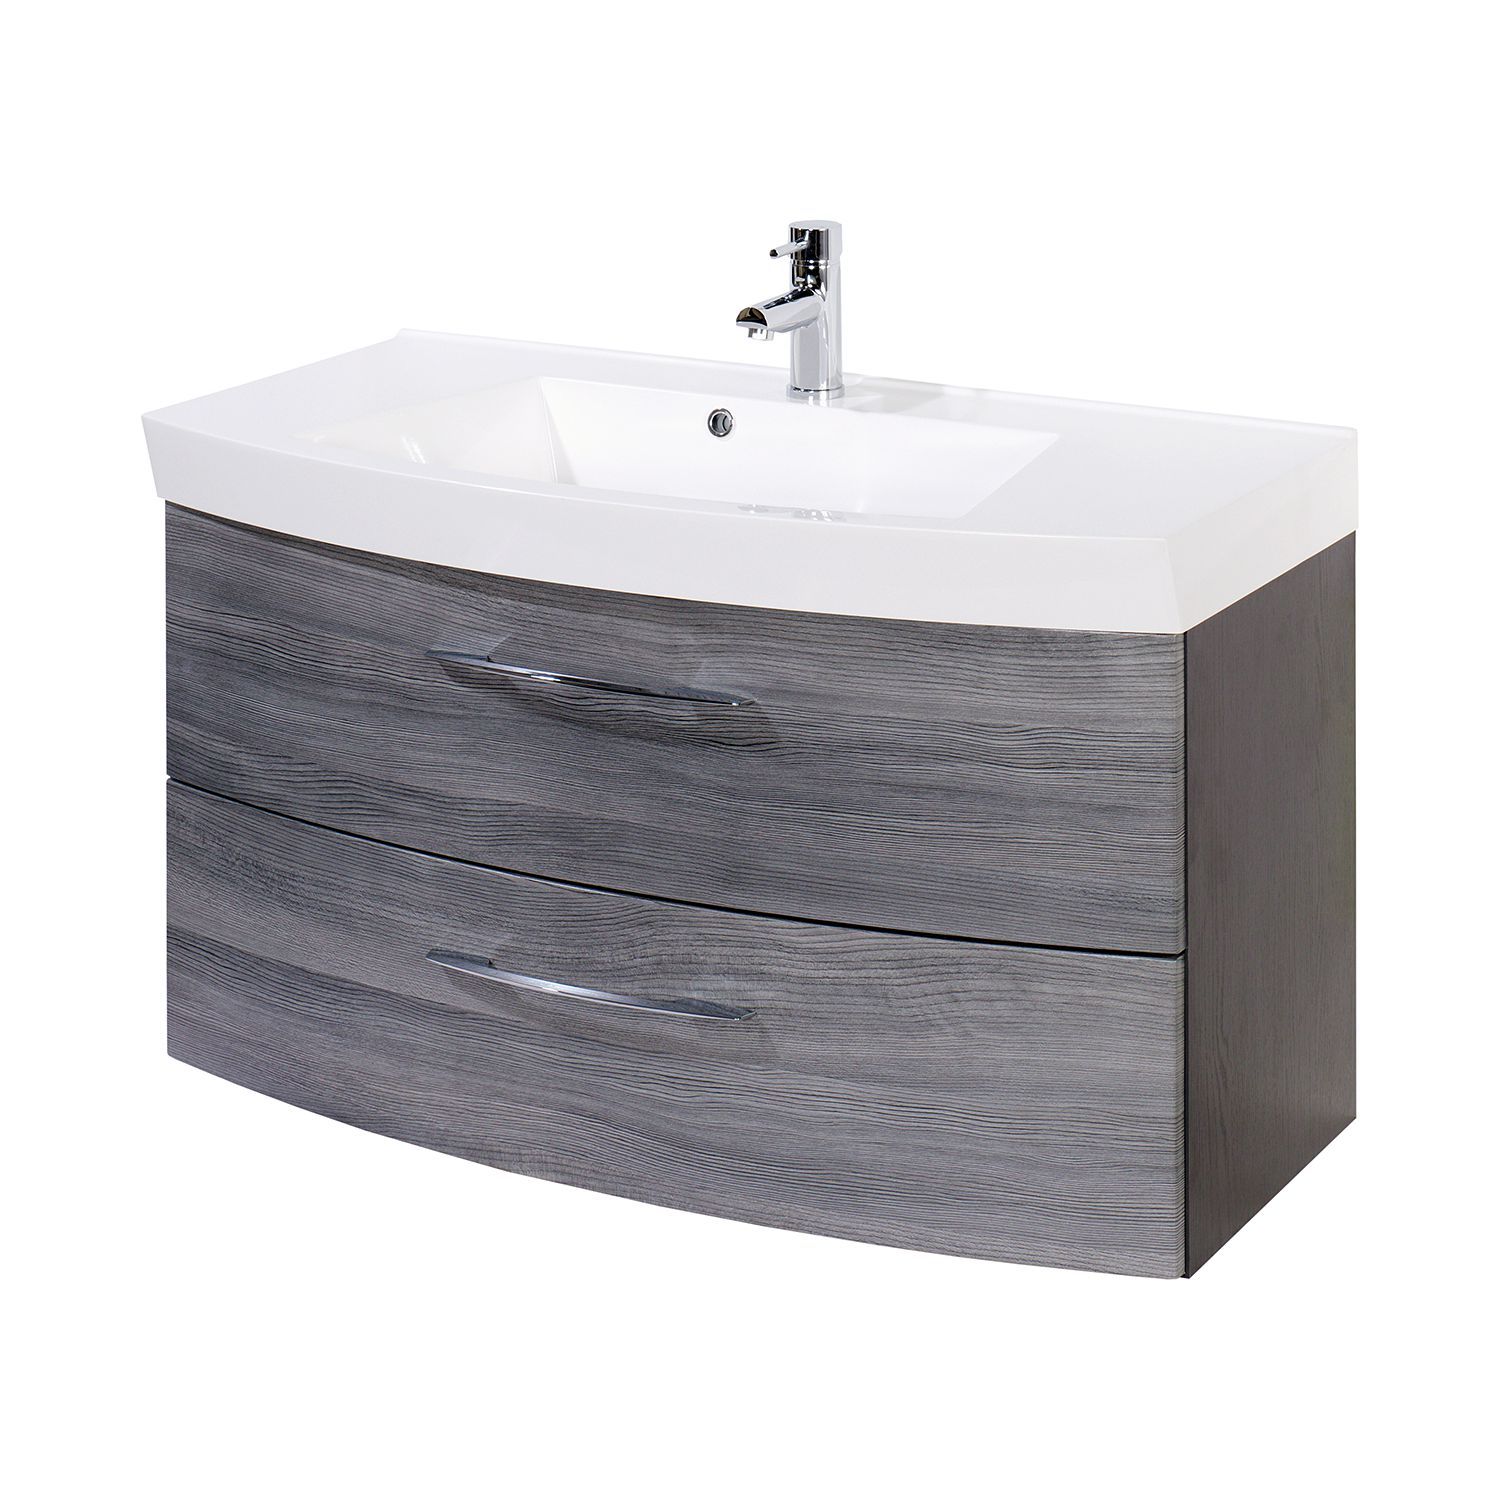 Mobile lavabo Strahan - Grigio / Marrone, Giessbach